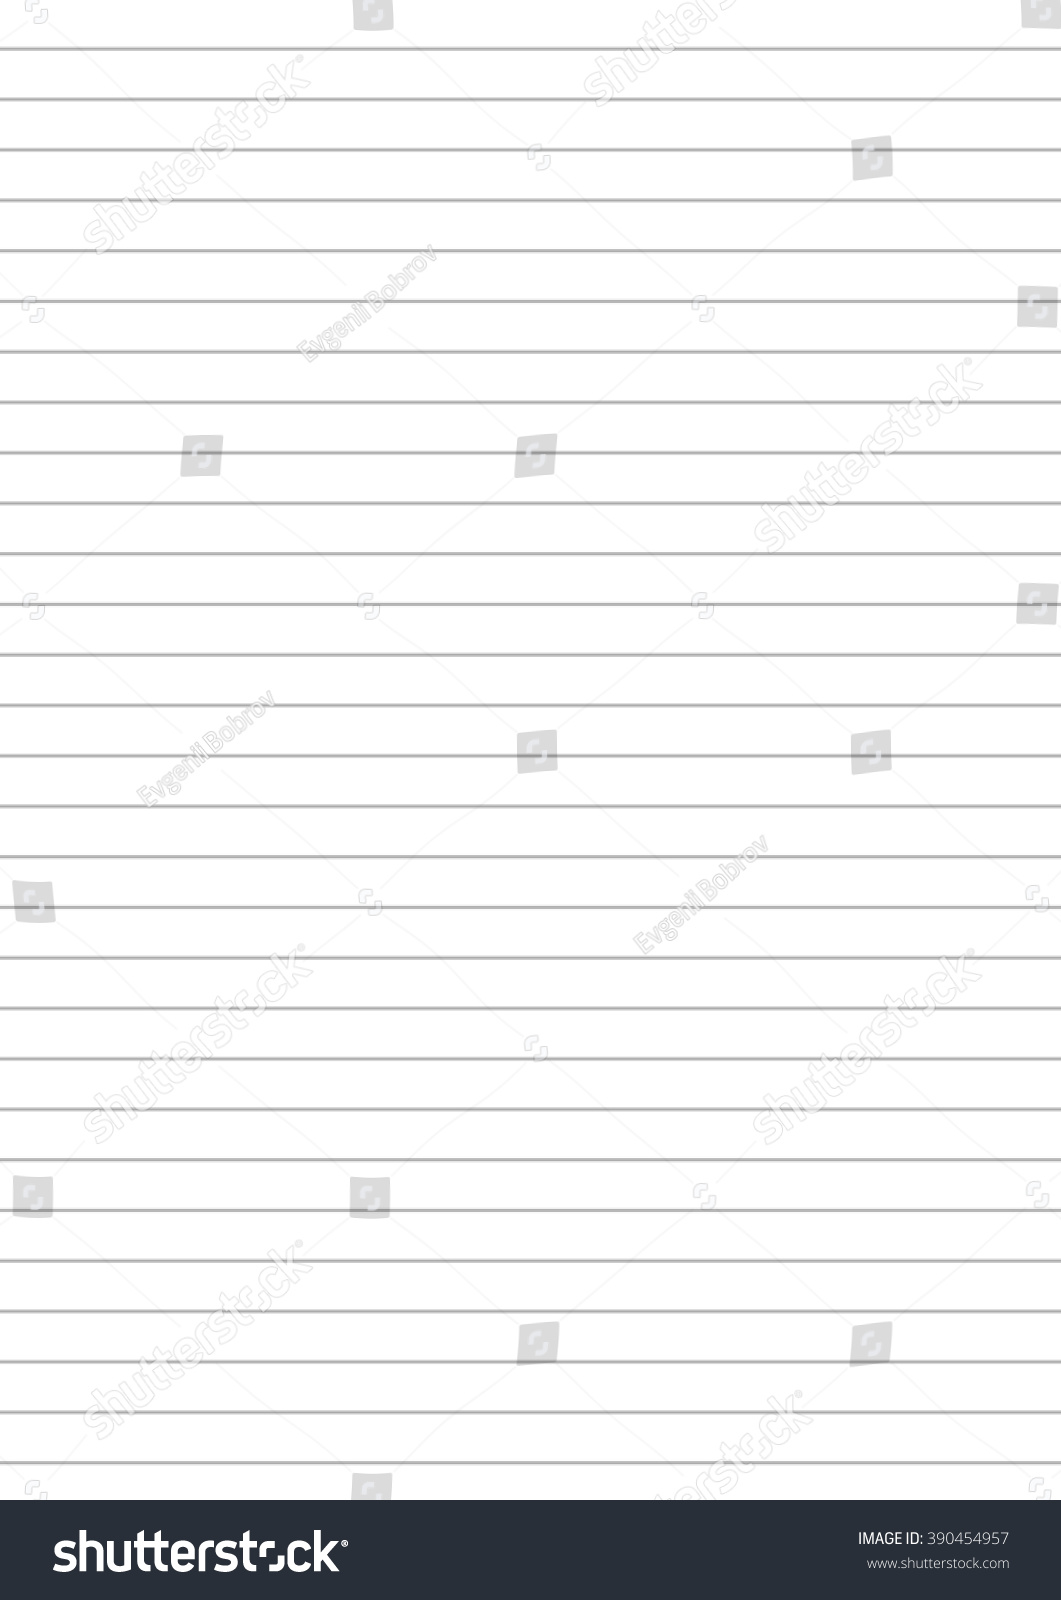 Notebook Paper One Centimeter Gray Line Illustration – Notebook Paper Template